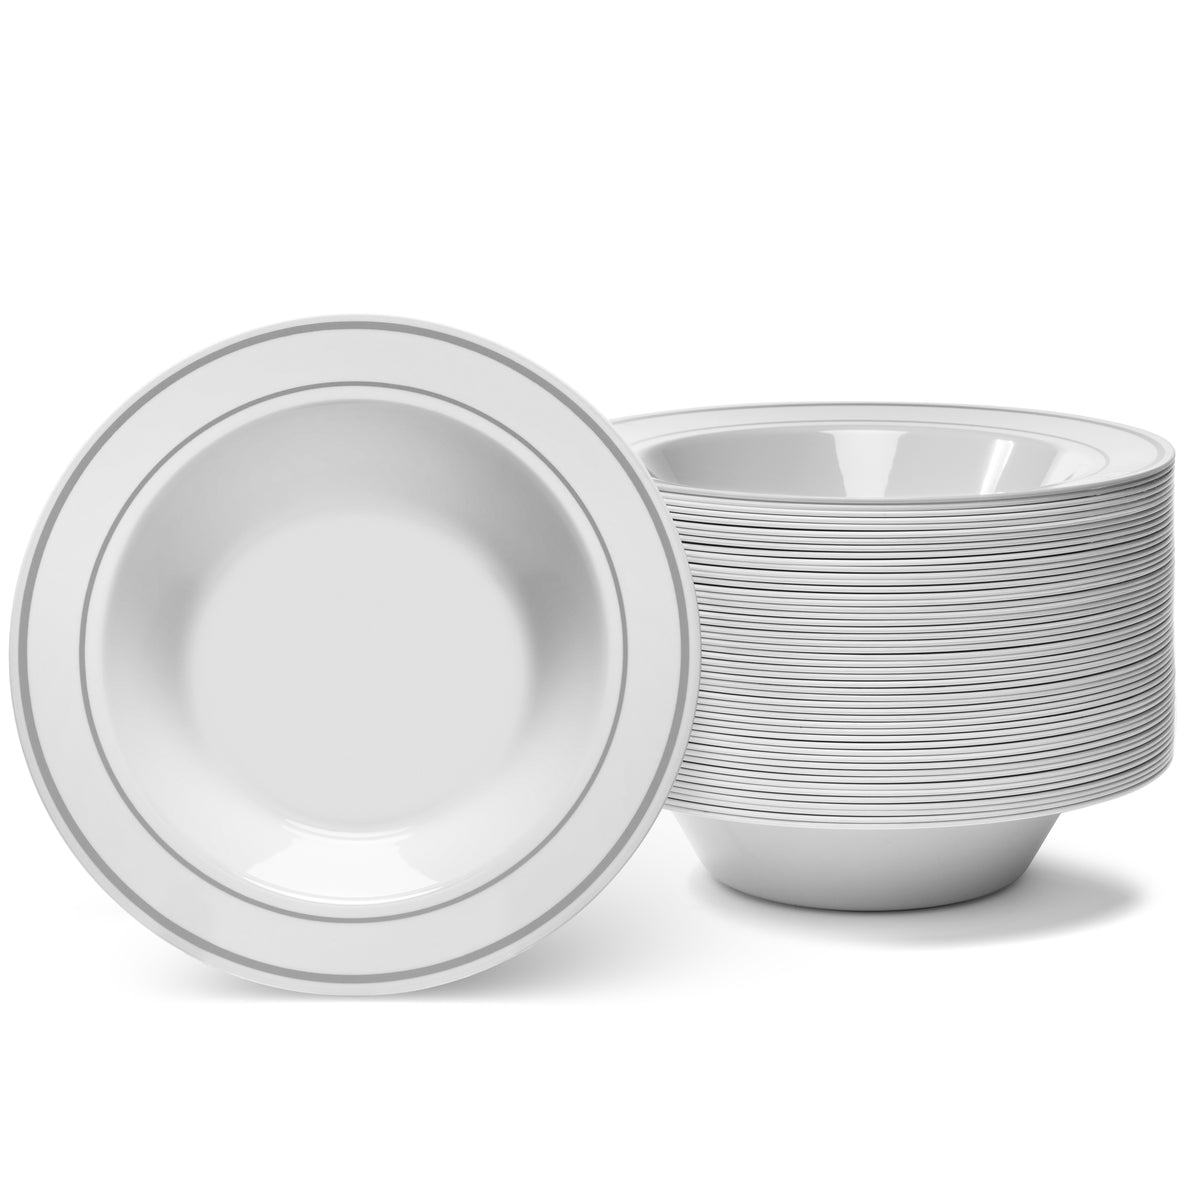 Silver Rimmed white Bowls set of fifty bowls